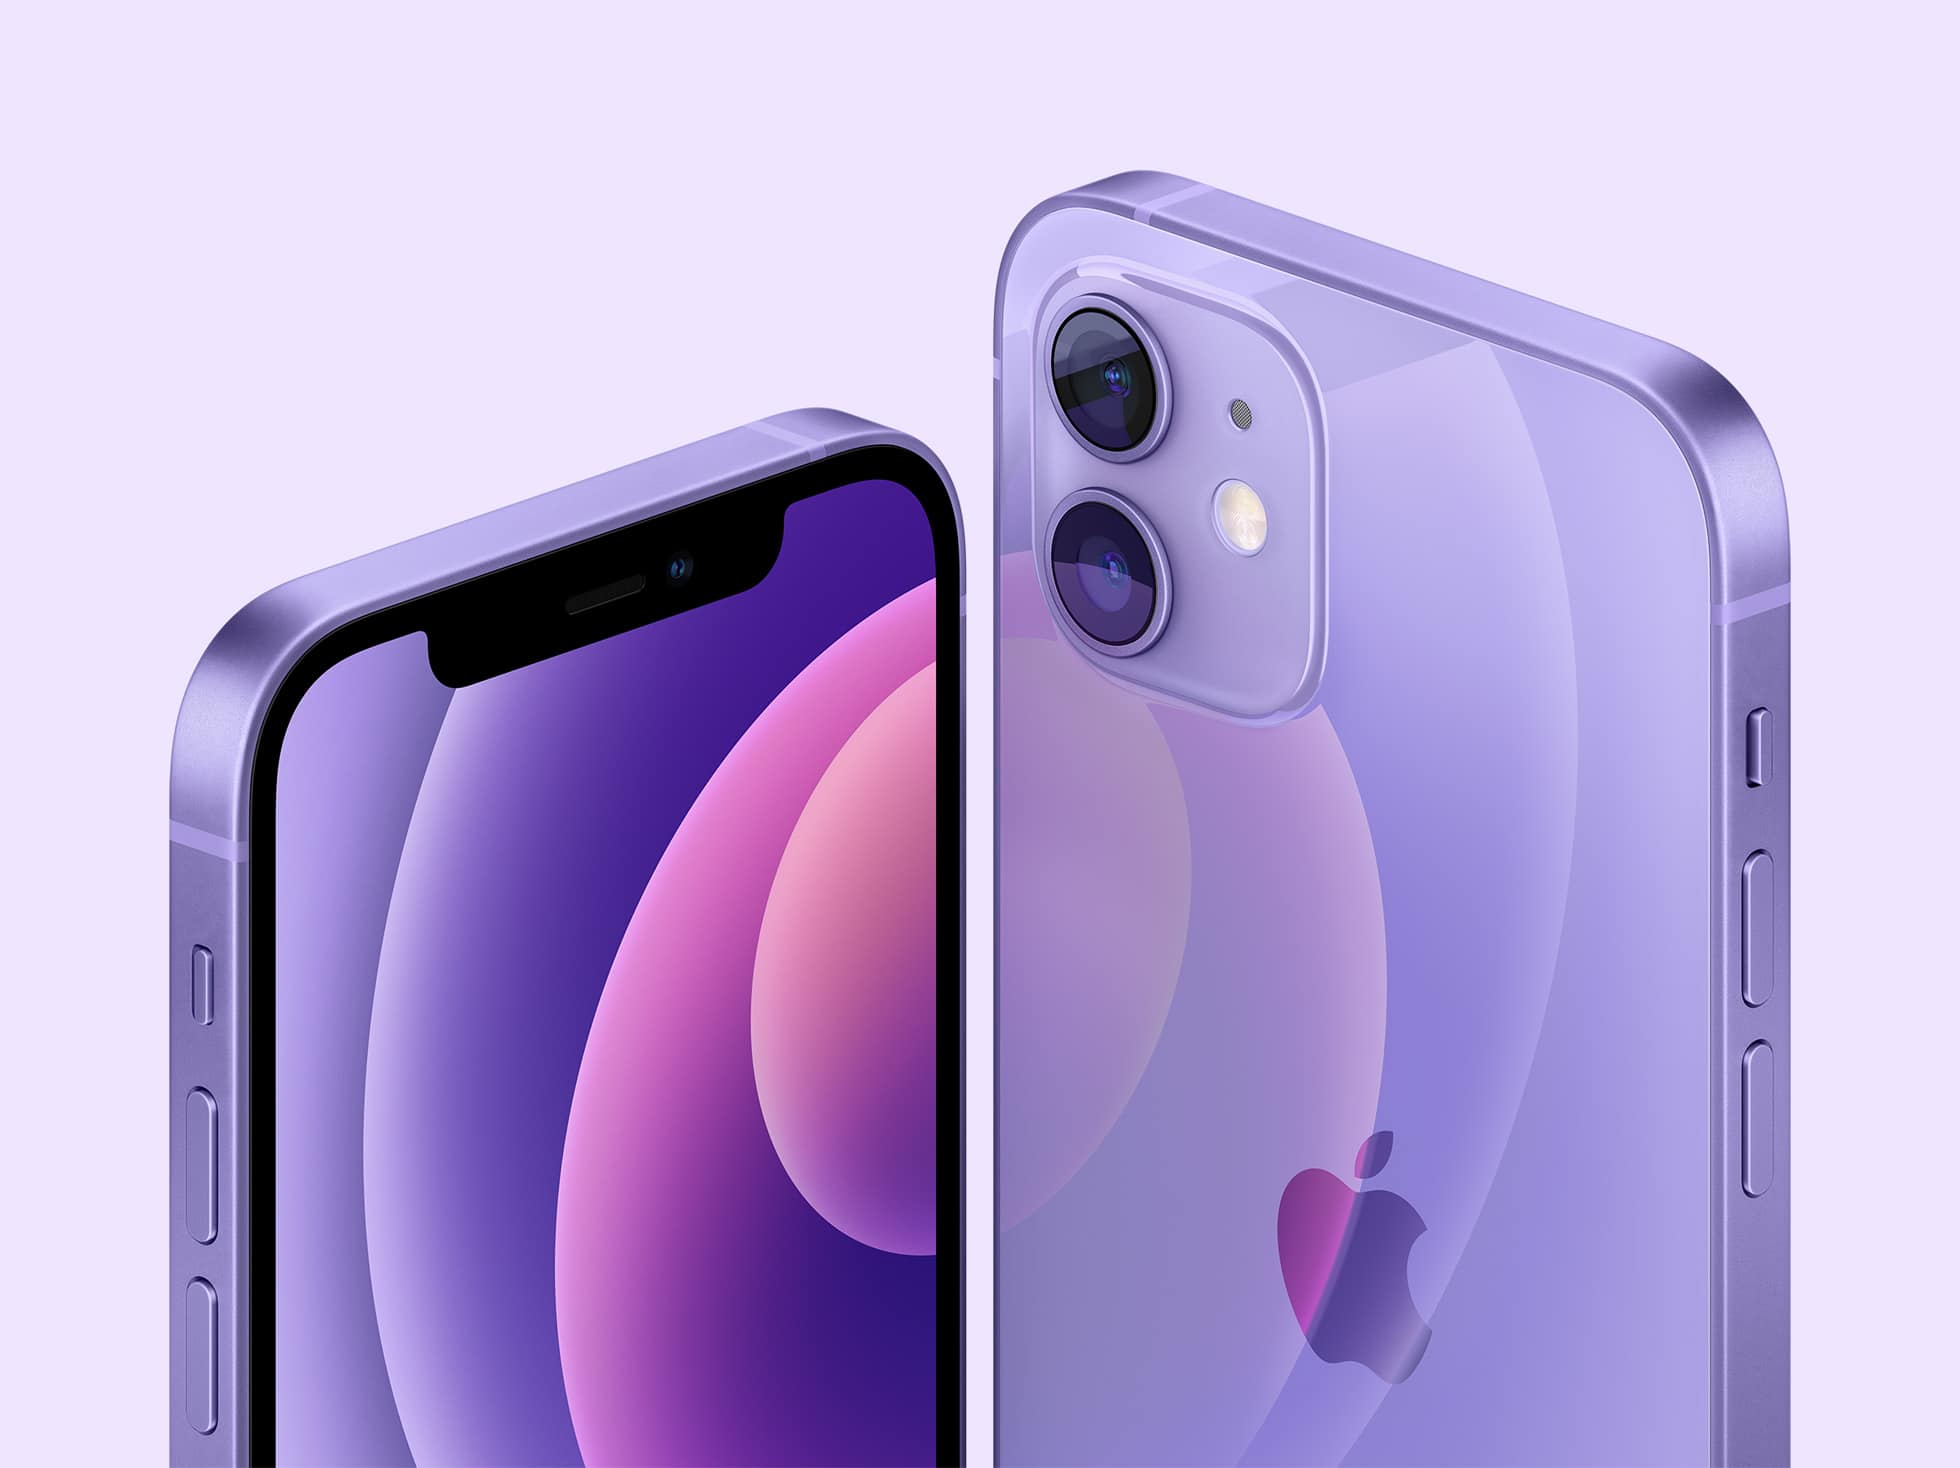 Apple anuncia los iPhone 12 y iPhone 12 mini en púrpura y los AirTags